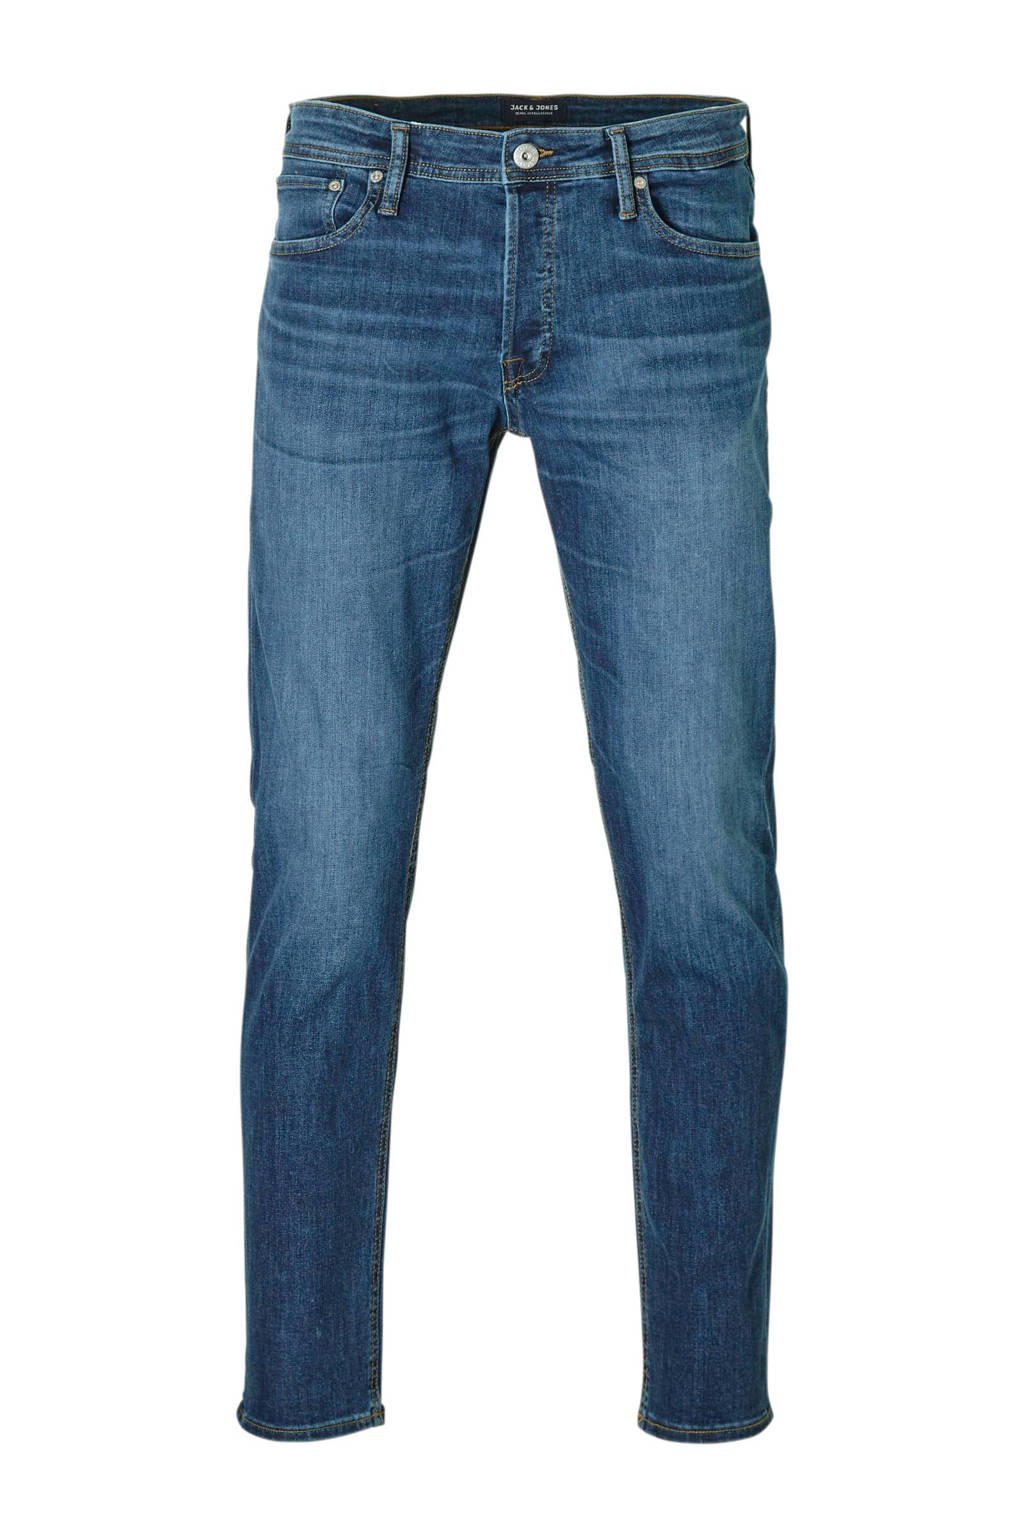 JACK & JONES JEANS INTELLIGENCE jeans, Blue denim